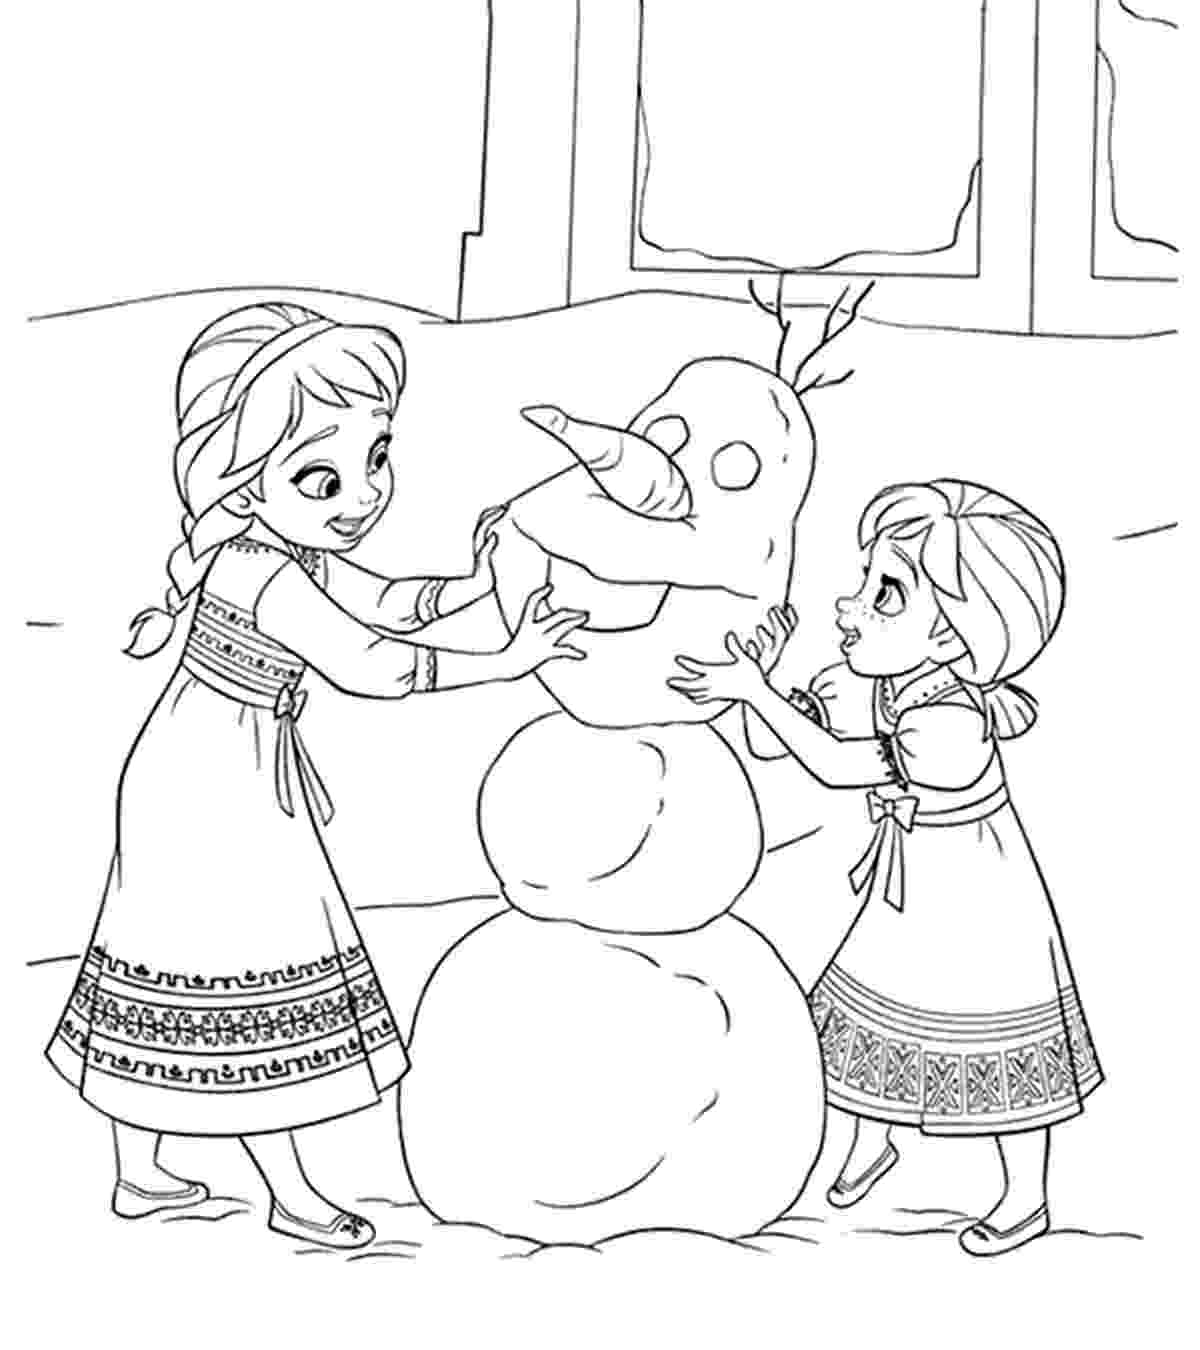 free printable coloring pages of elsa from frozen free printable frozen coloring pages for kids best coloring printable elsa frozen pages of from free